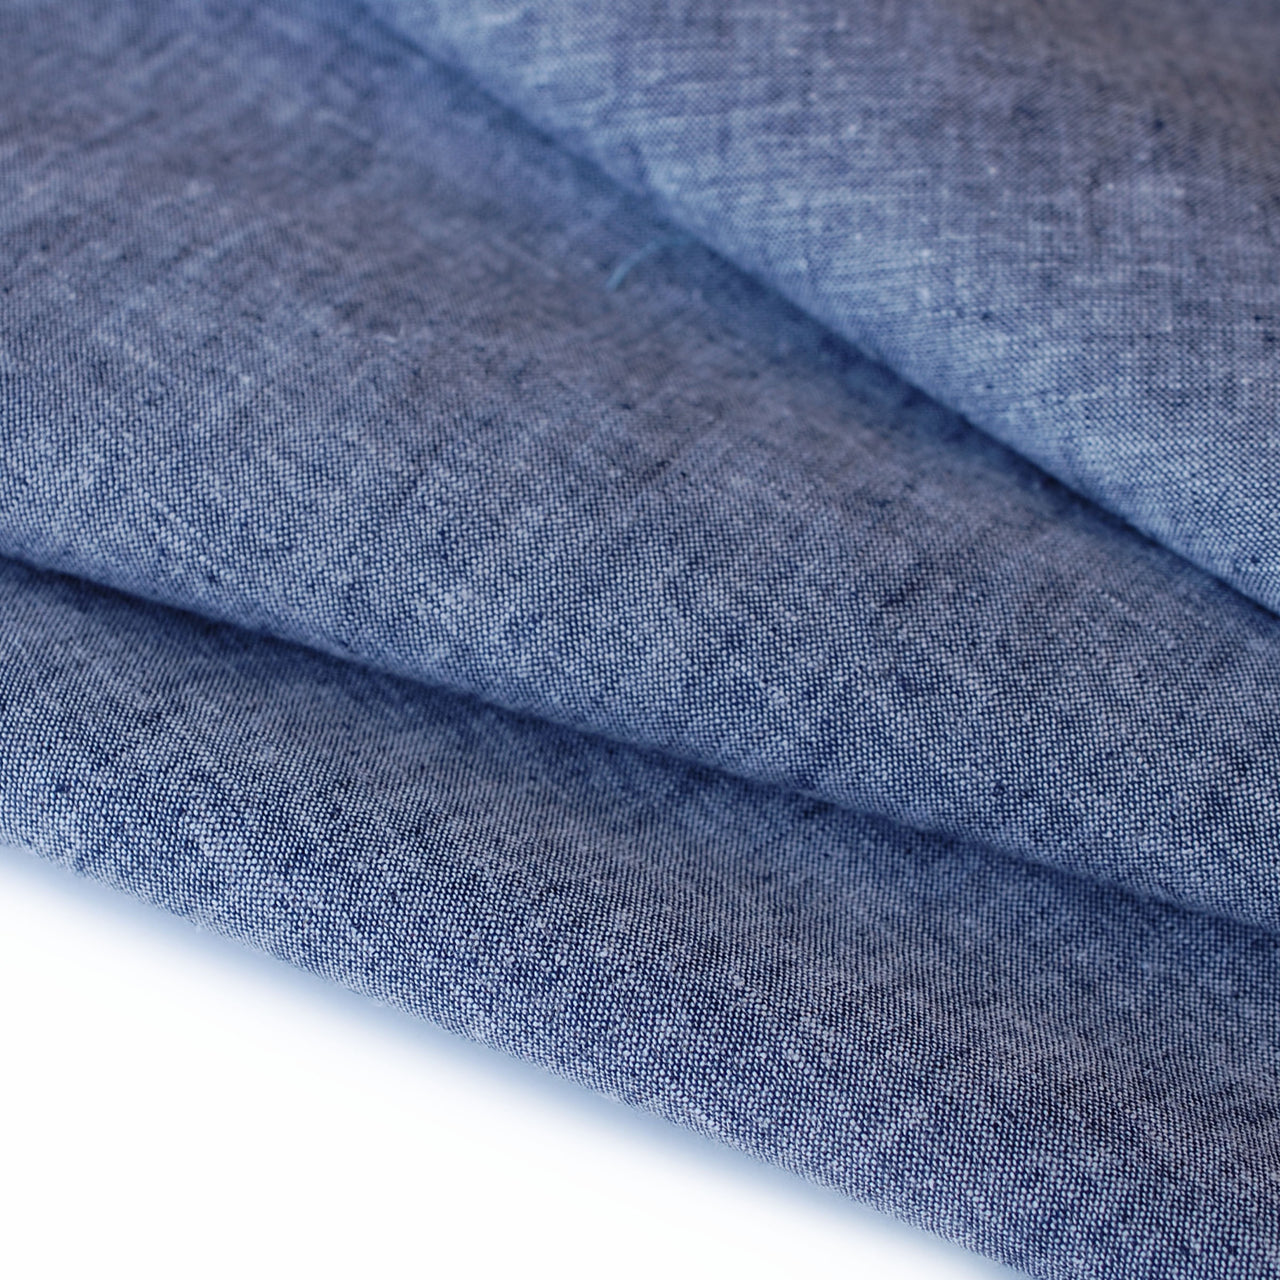 1/2M Linen/Cotton Yarn Dyed Chambray in Navy